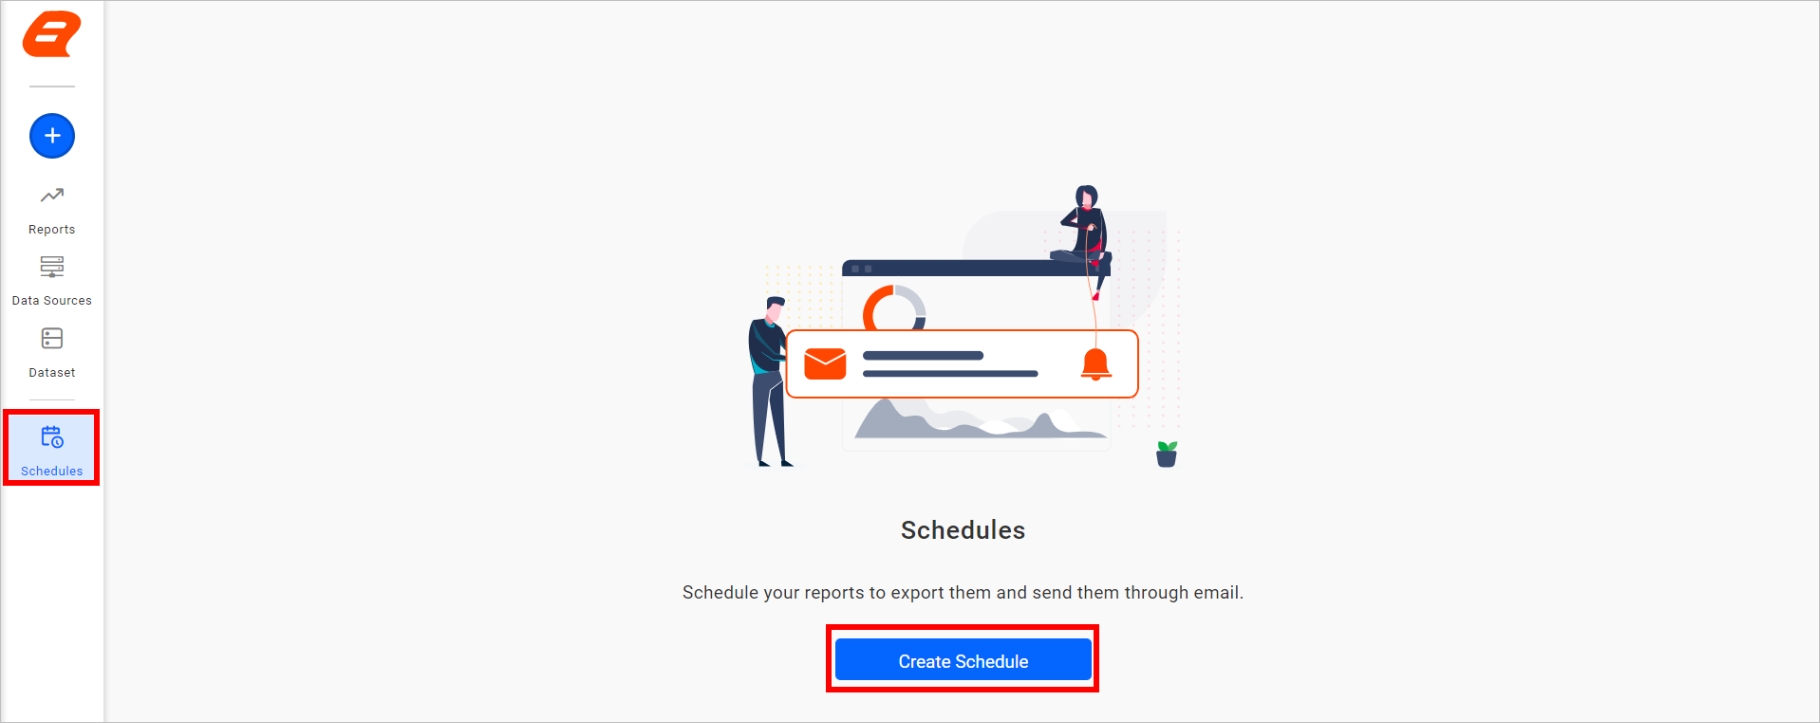 Create schedule from the sidebar.